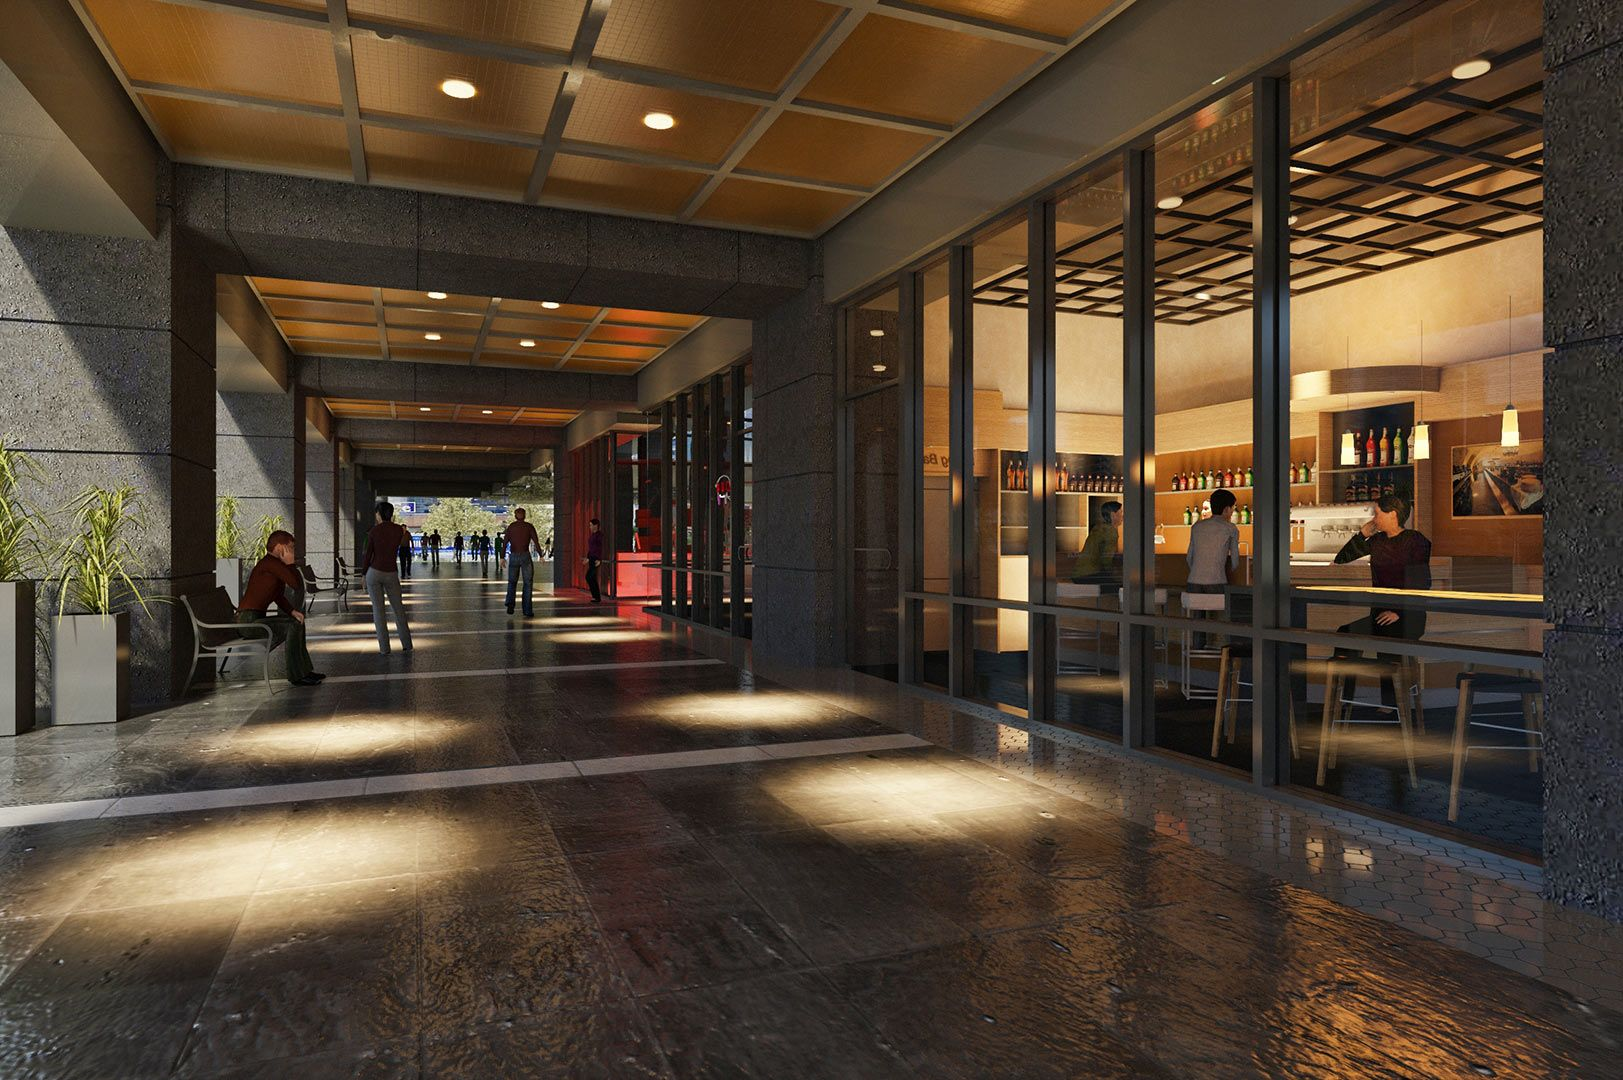 IRAY Rendering using 3DS Max | Architecture Photography ...